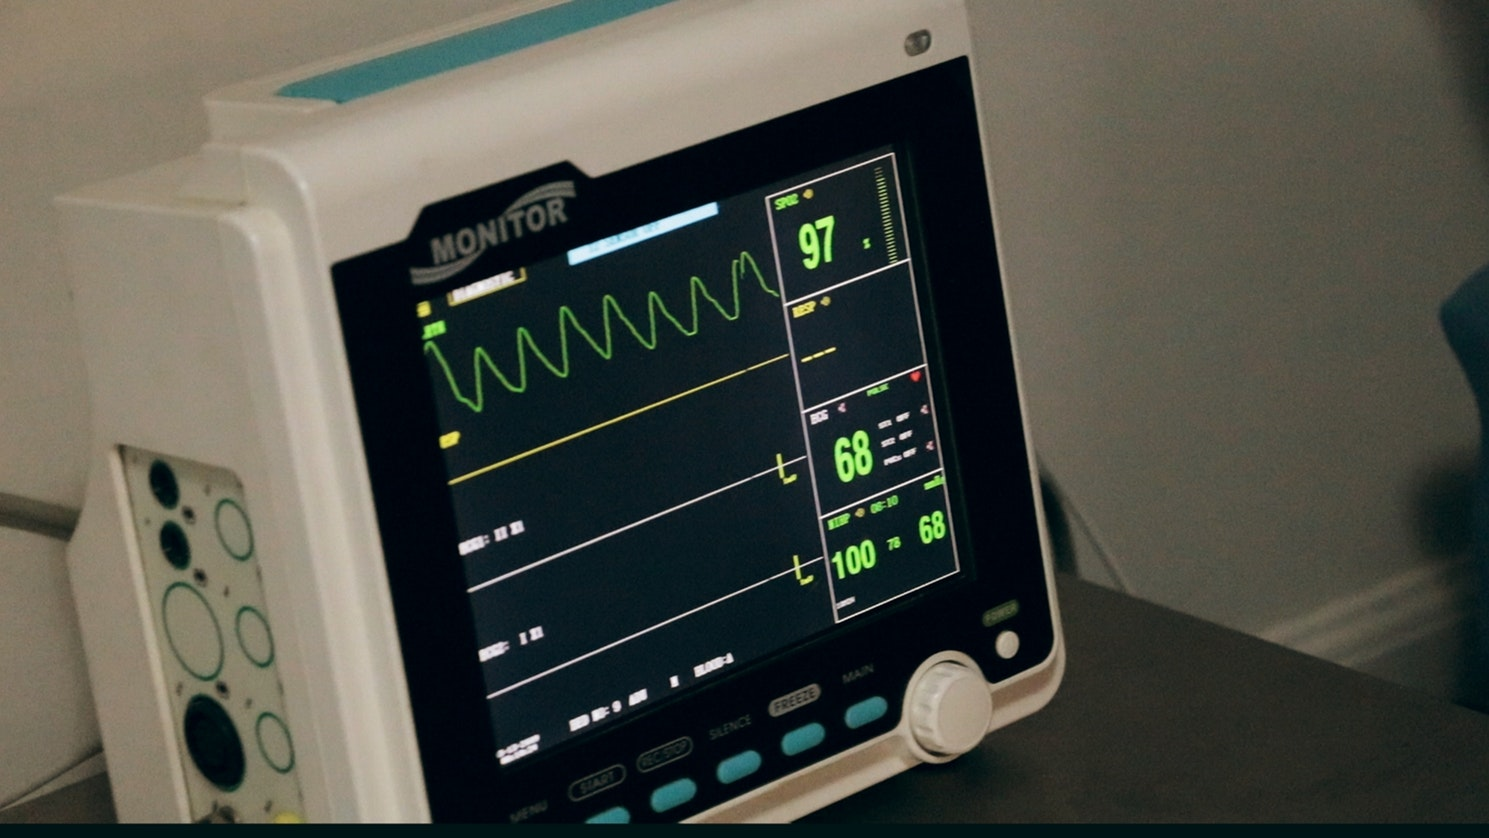 A heart monitor to track an individuals heart beat who is having heart problems